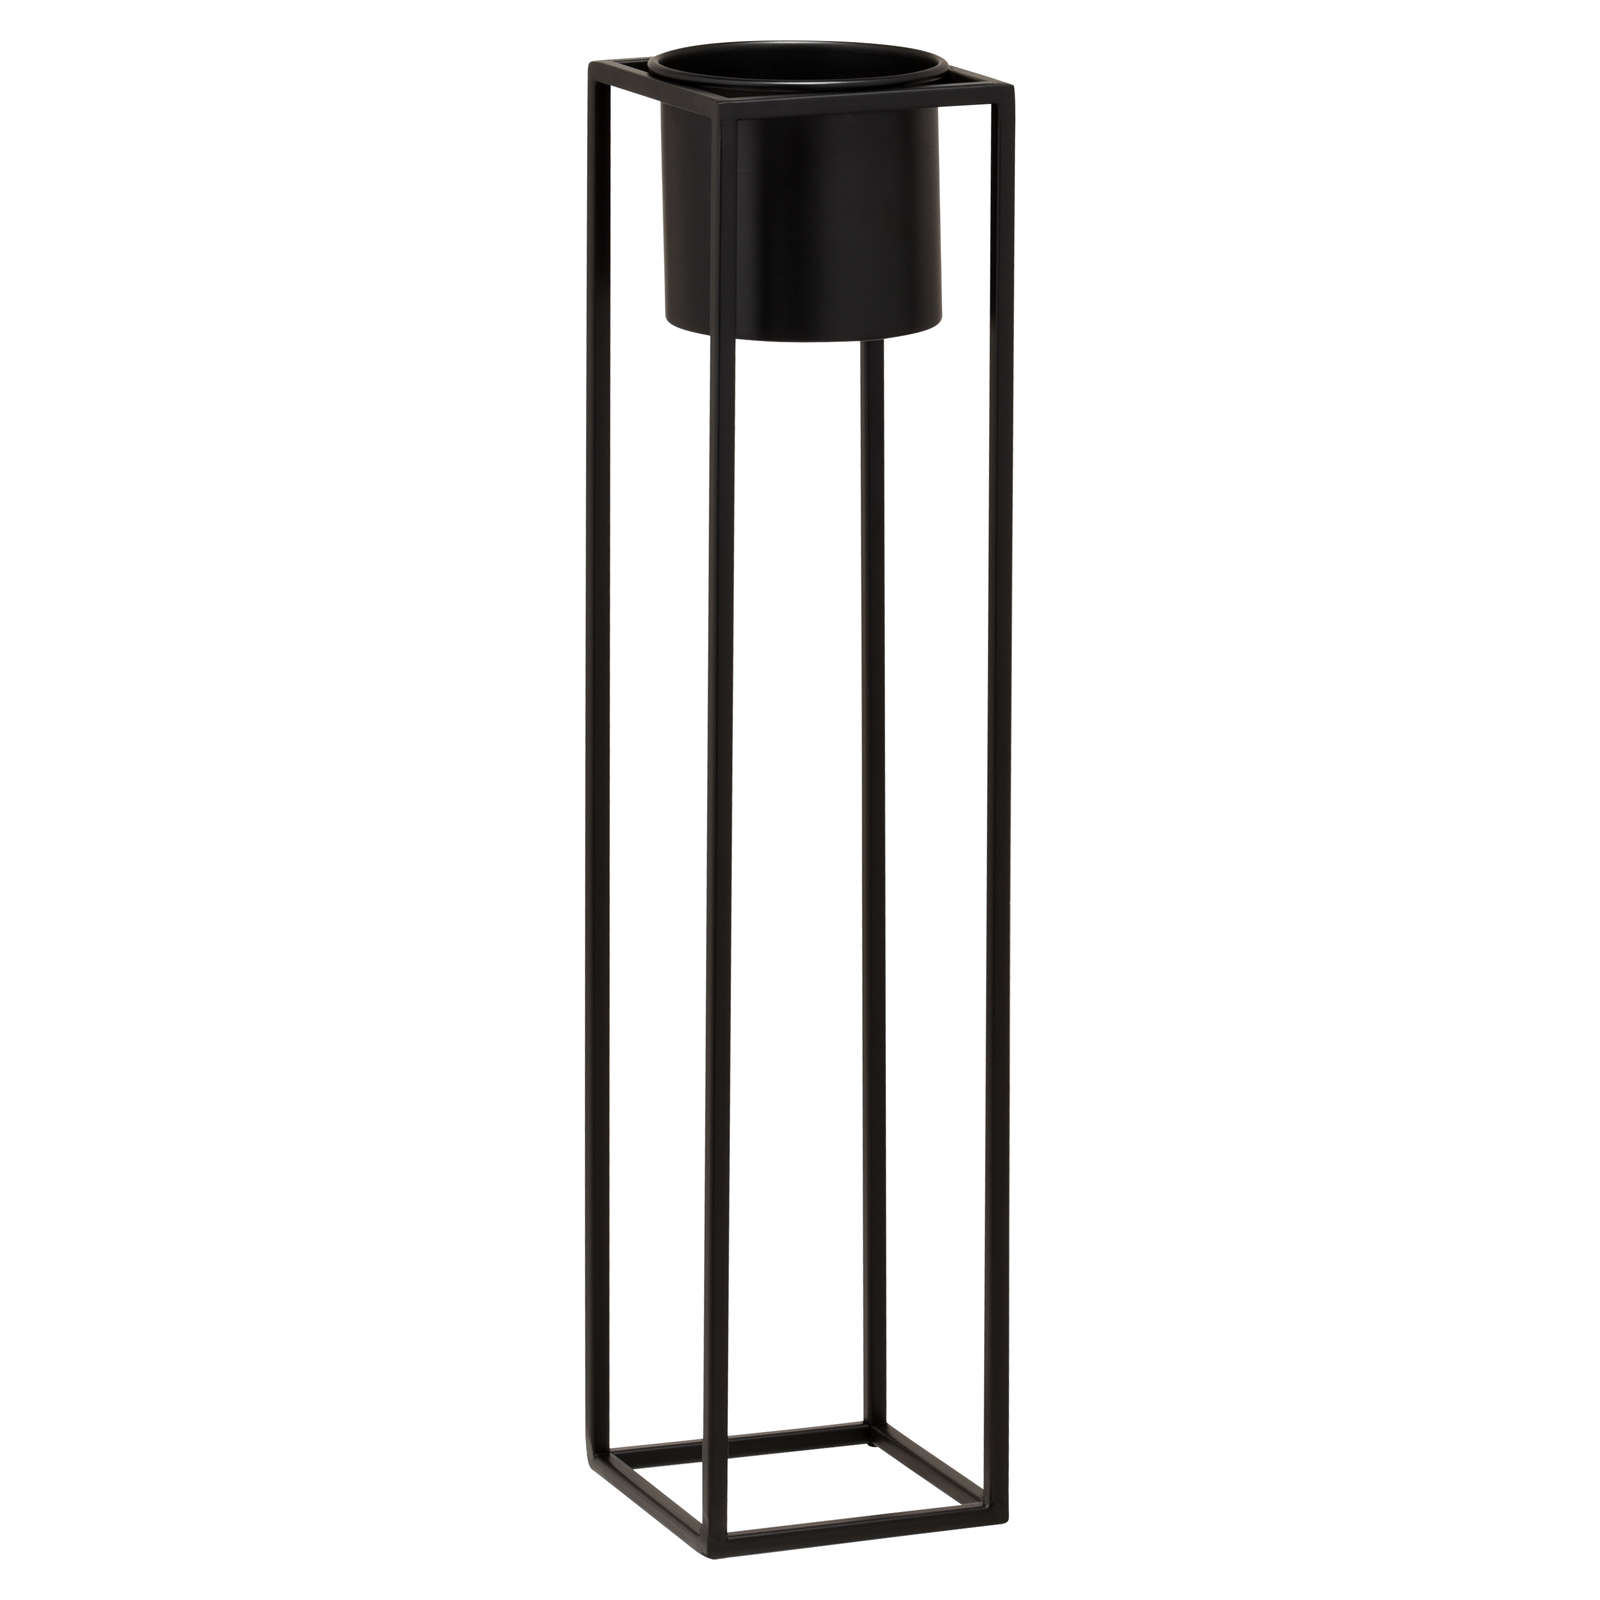 Hartleys-Small-Round-Freestanding-Black-Metal-Plant-Pot-Tall-Square-Floor-Stand thumbnail 20